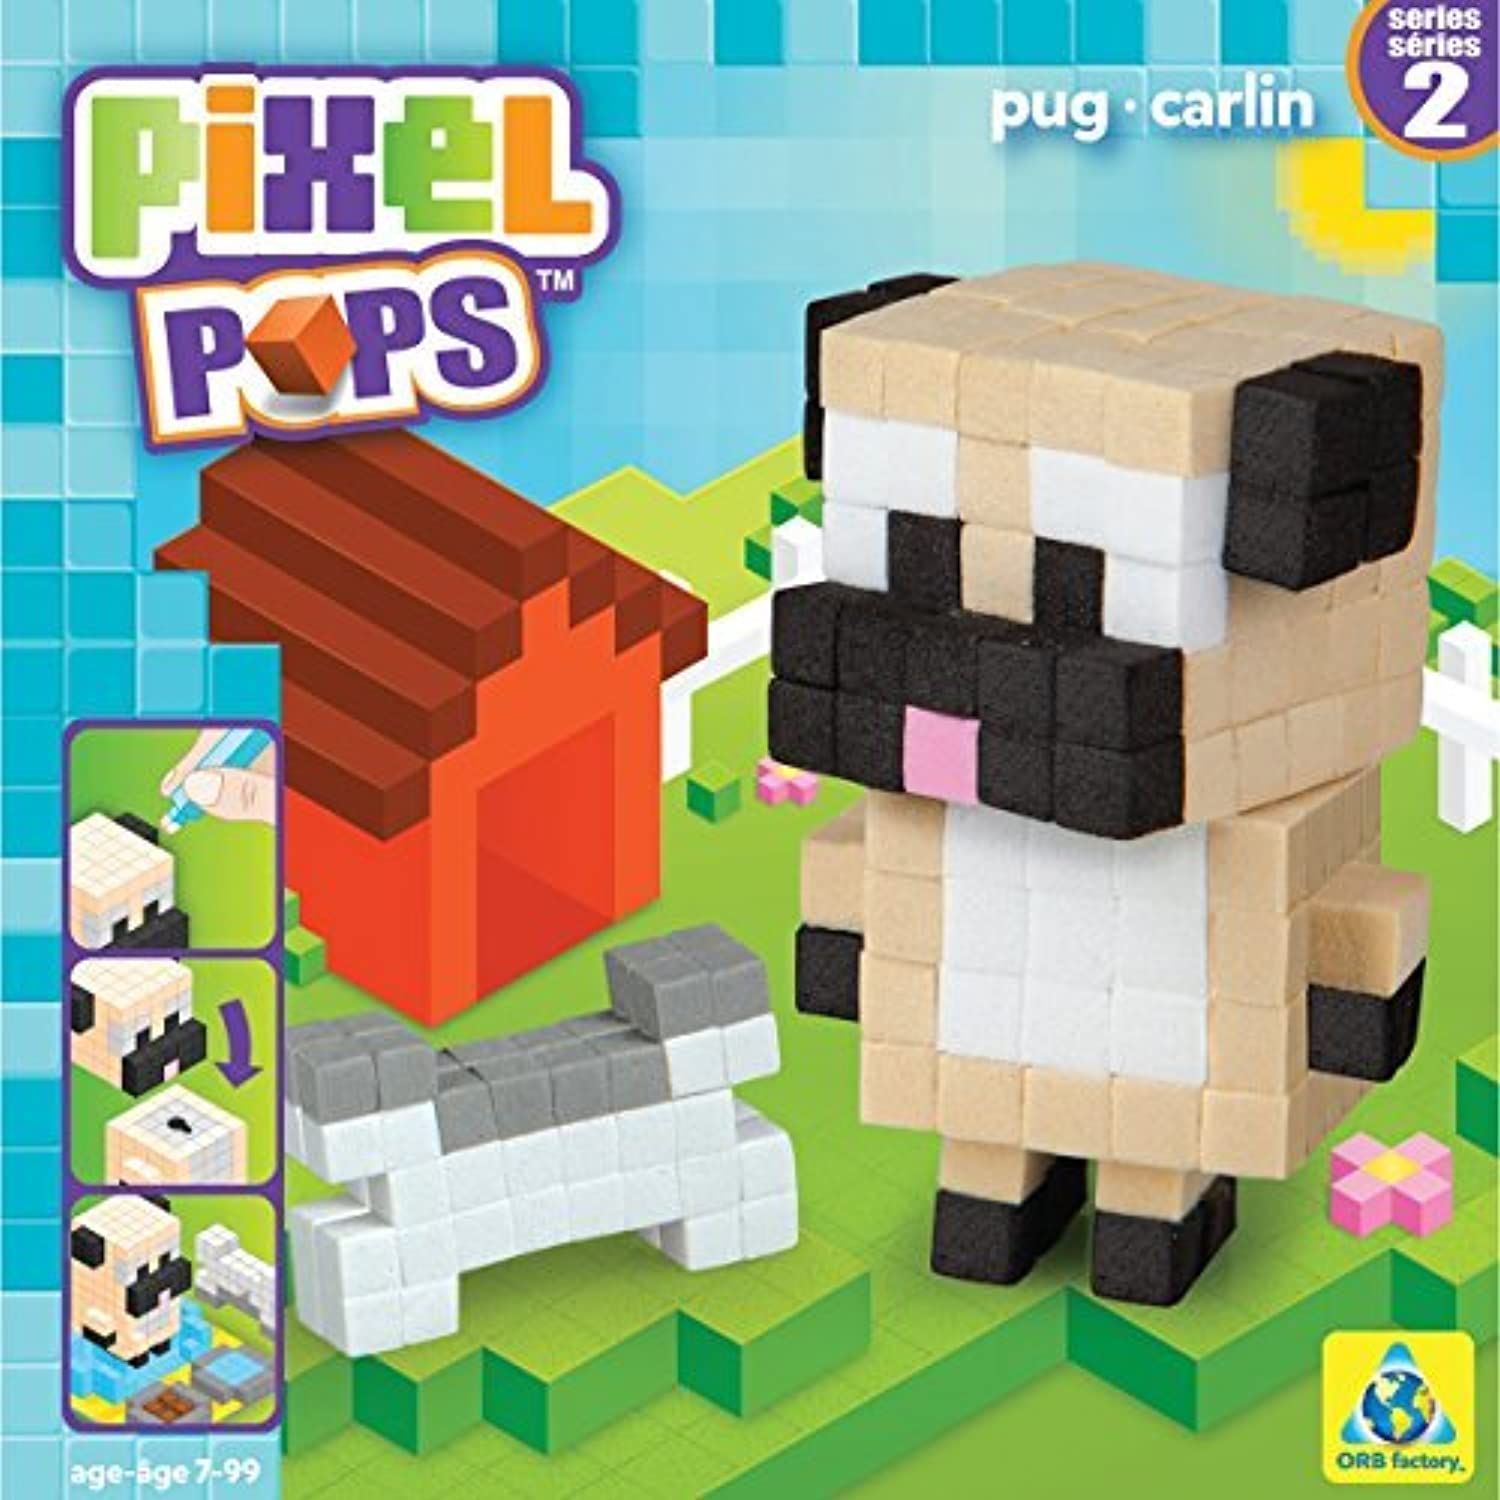 Pixel Pops Figure Kits-Pug by The Orb Factory